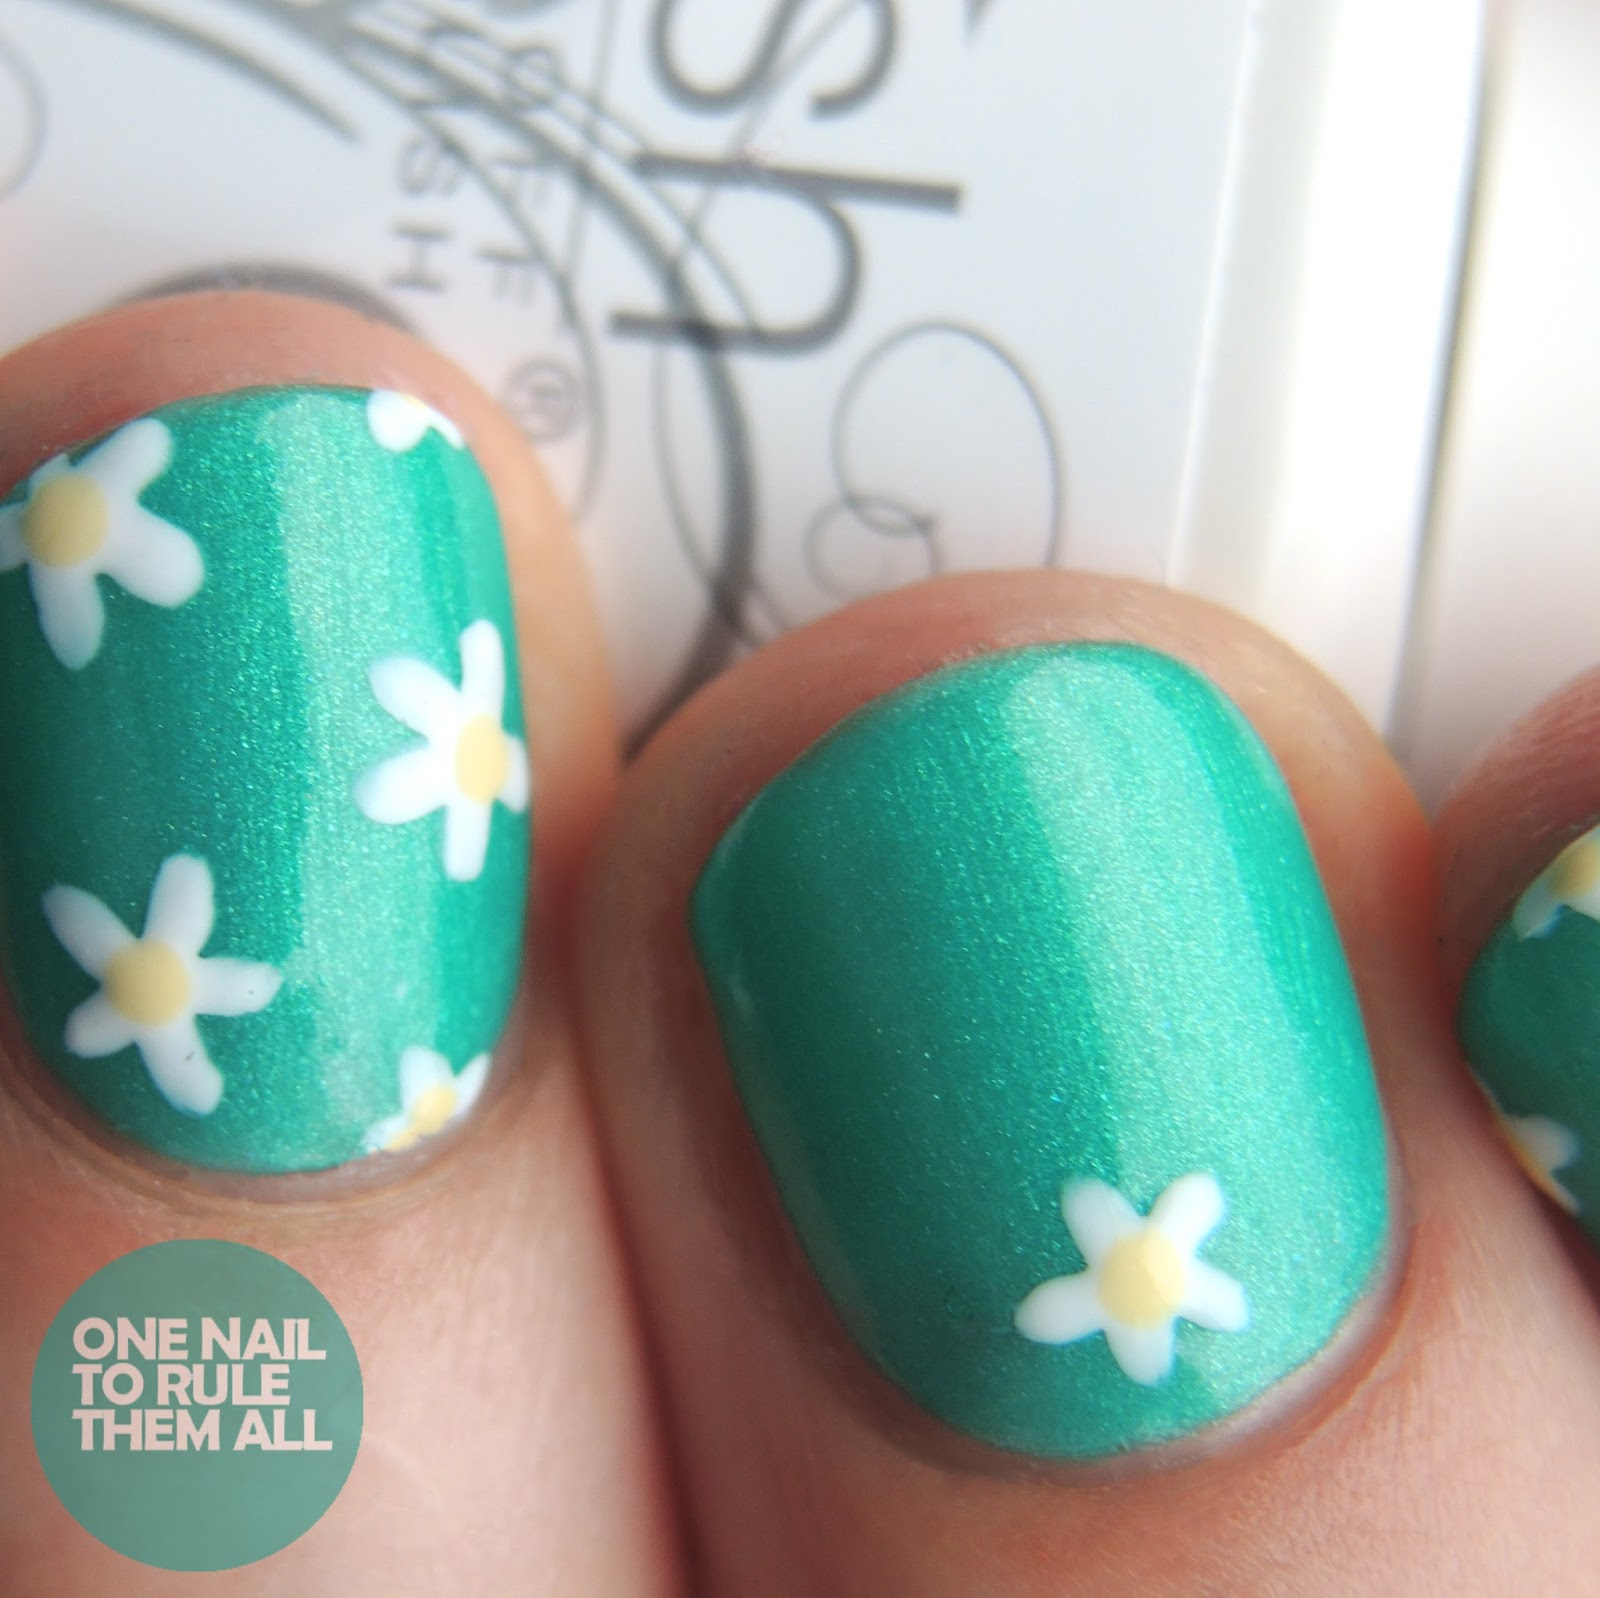 One Nail To Rule Them All: Gelish Green Daisies